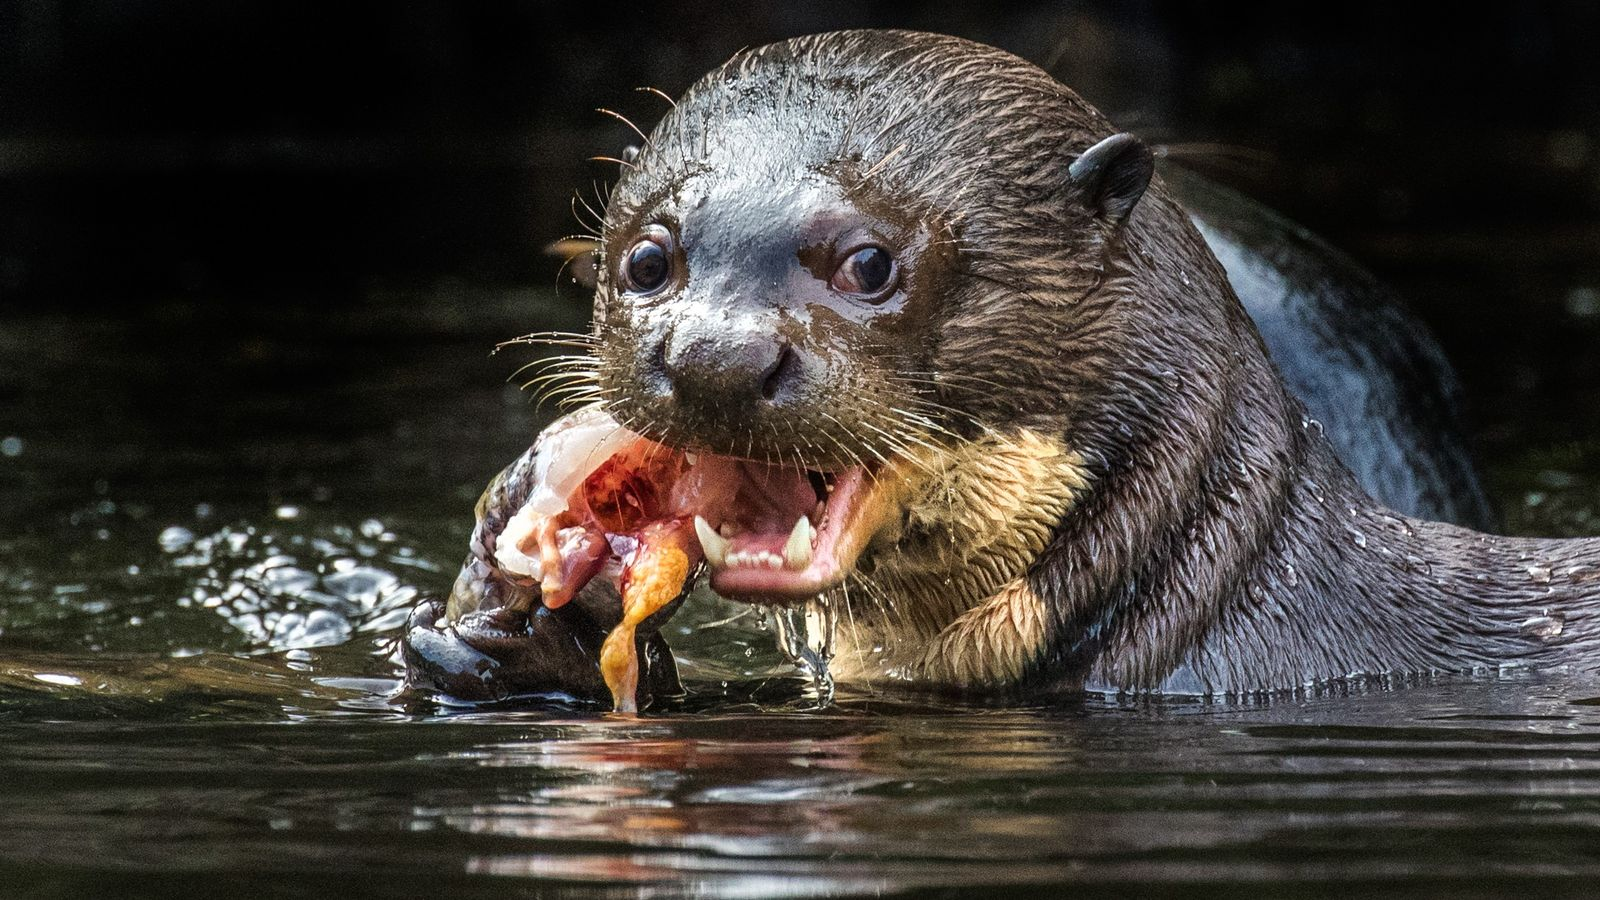 The giant river otter lives in the slow-moving rivers, lakes, and swamps of the Amazon basin. ...